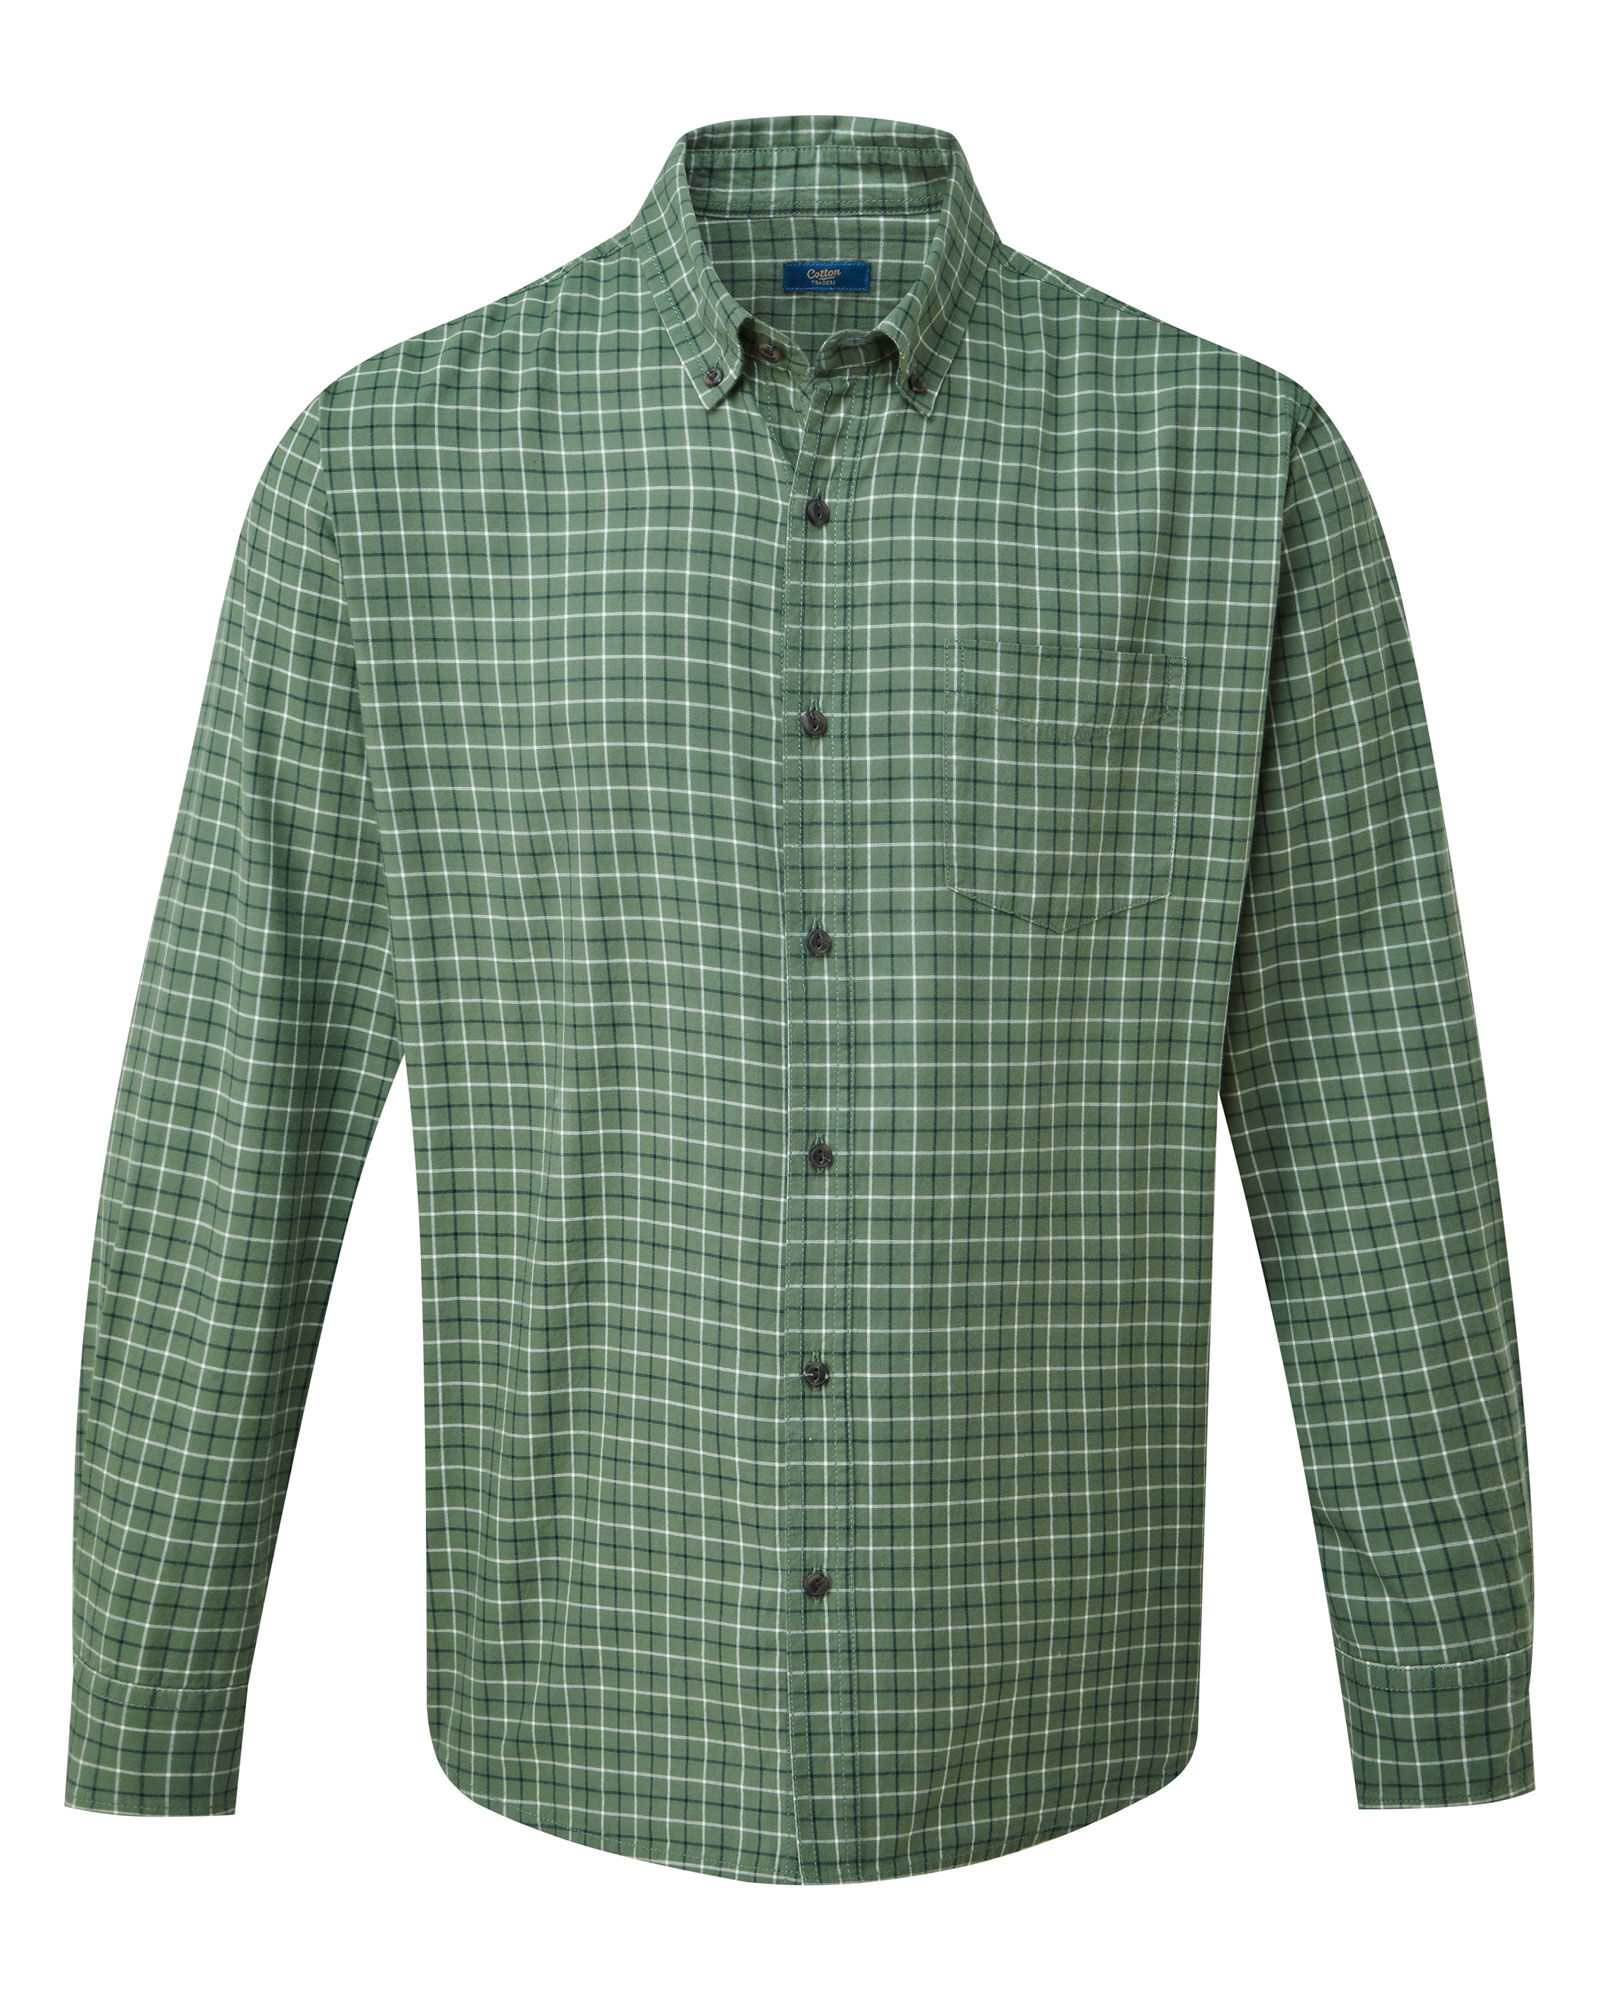 Cotton Traders Mens Comfortable Classic Long Sleeve Tattersall Twill Shirt